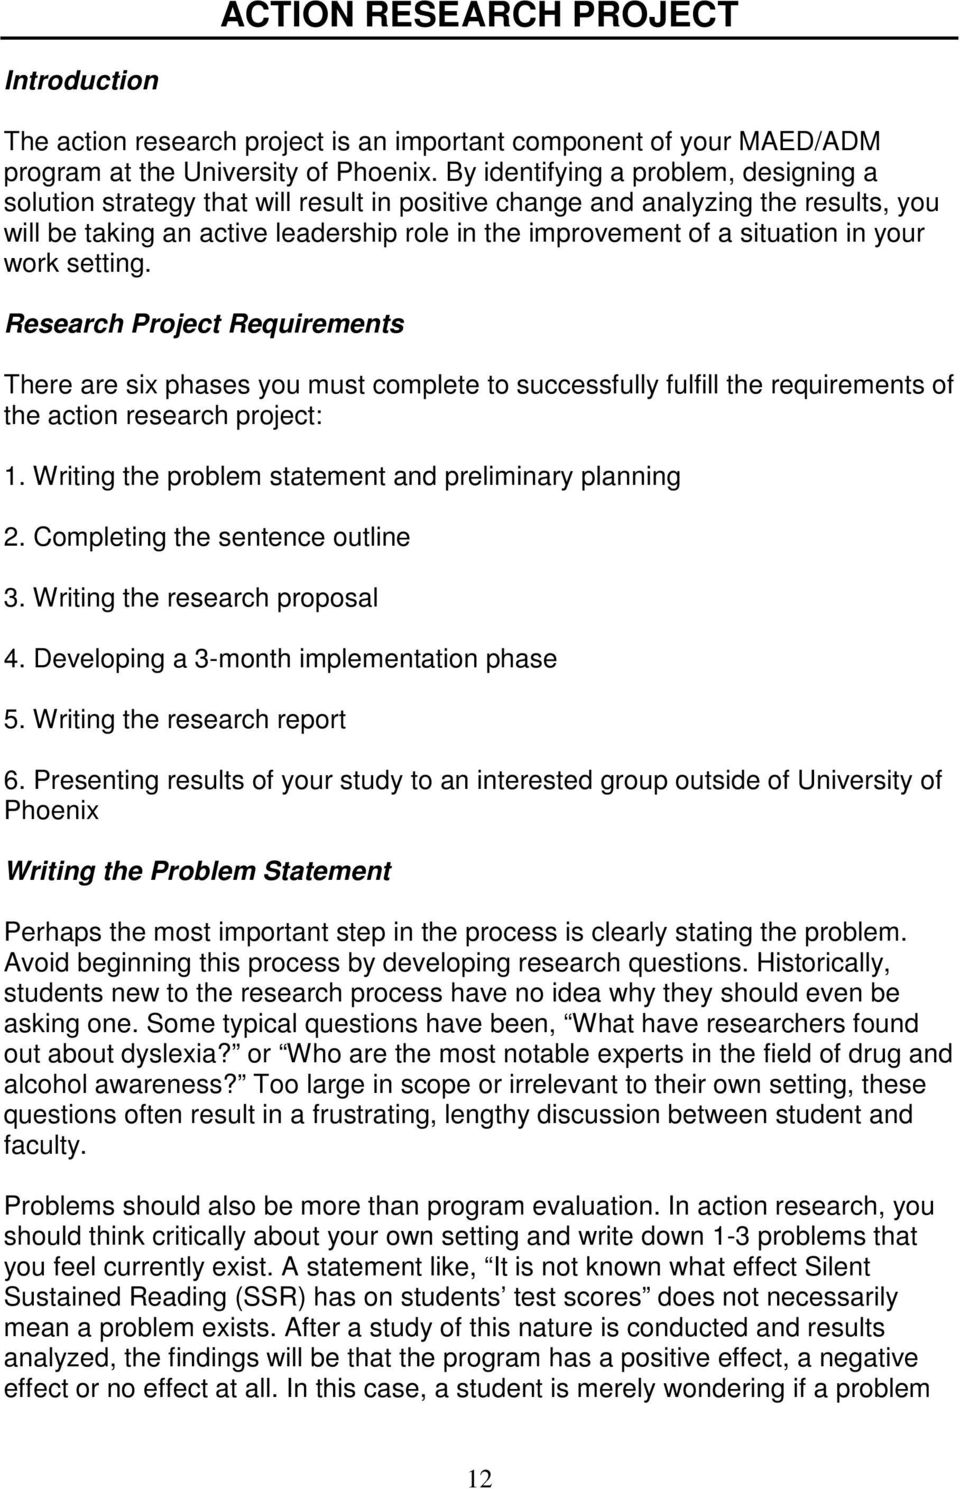 in your work setting. Research Project Requirements There are six phases you must complete to successfully fulfill the requirements of the action research project: 1.